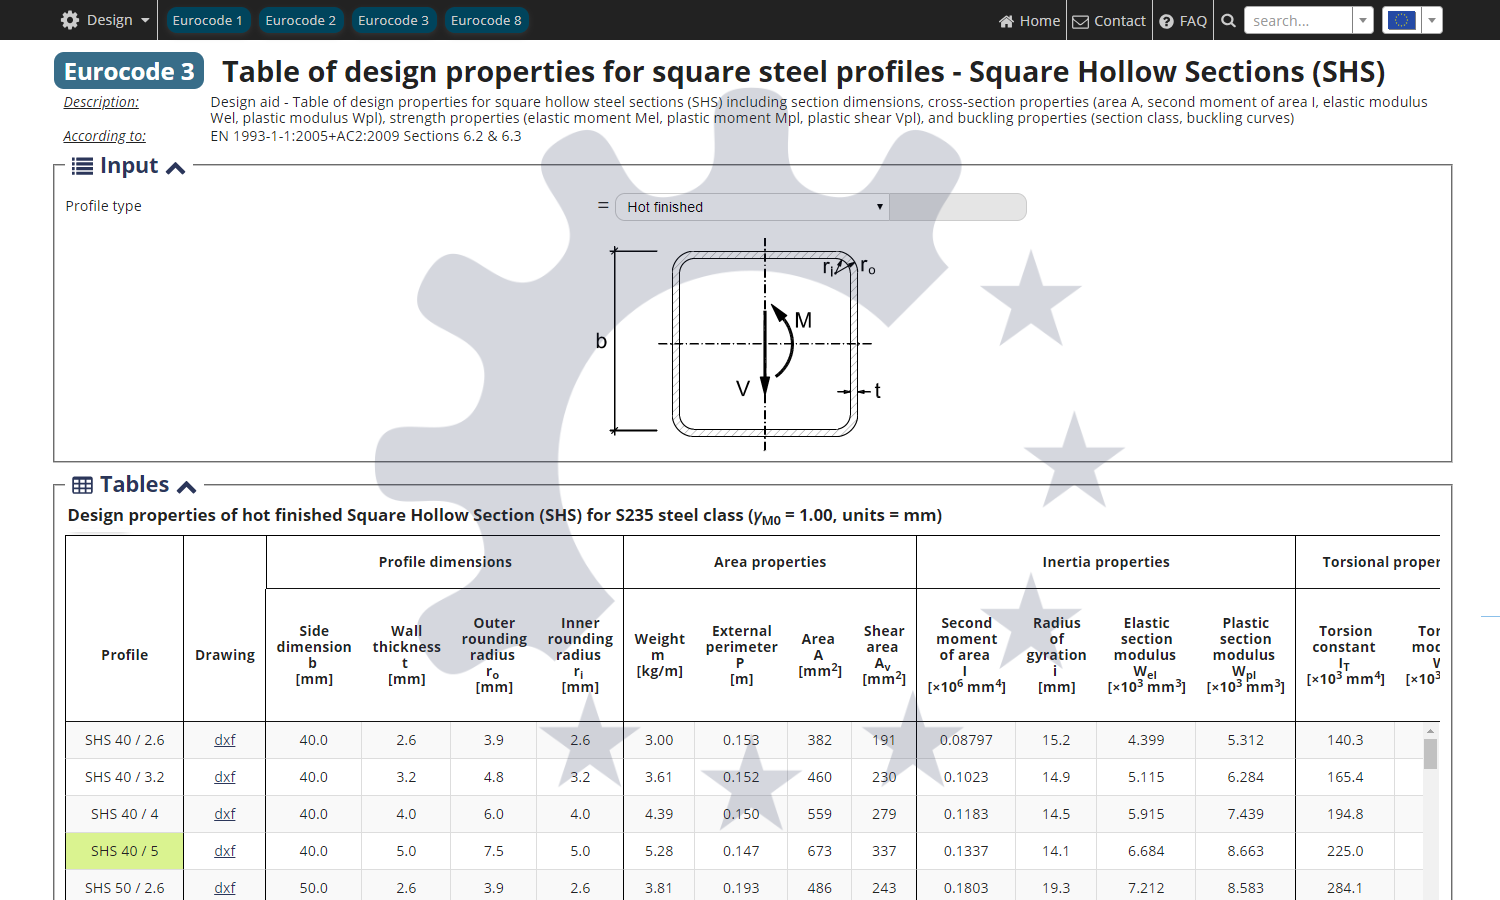 Table of design properties for Square Hollow Sections (SHS)